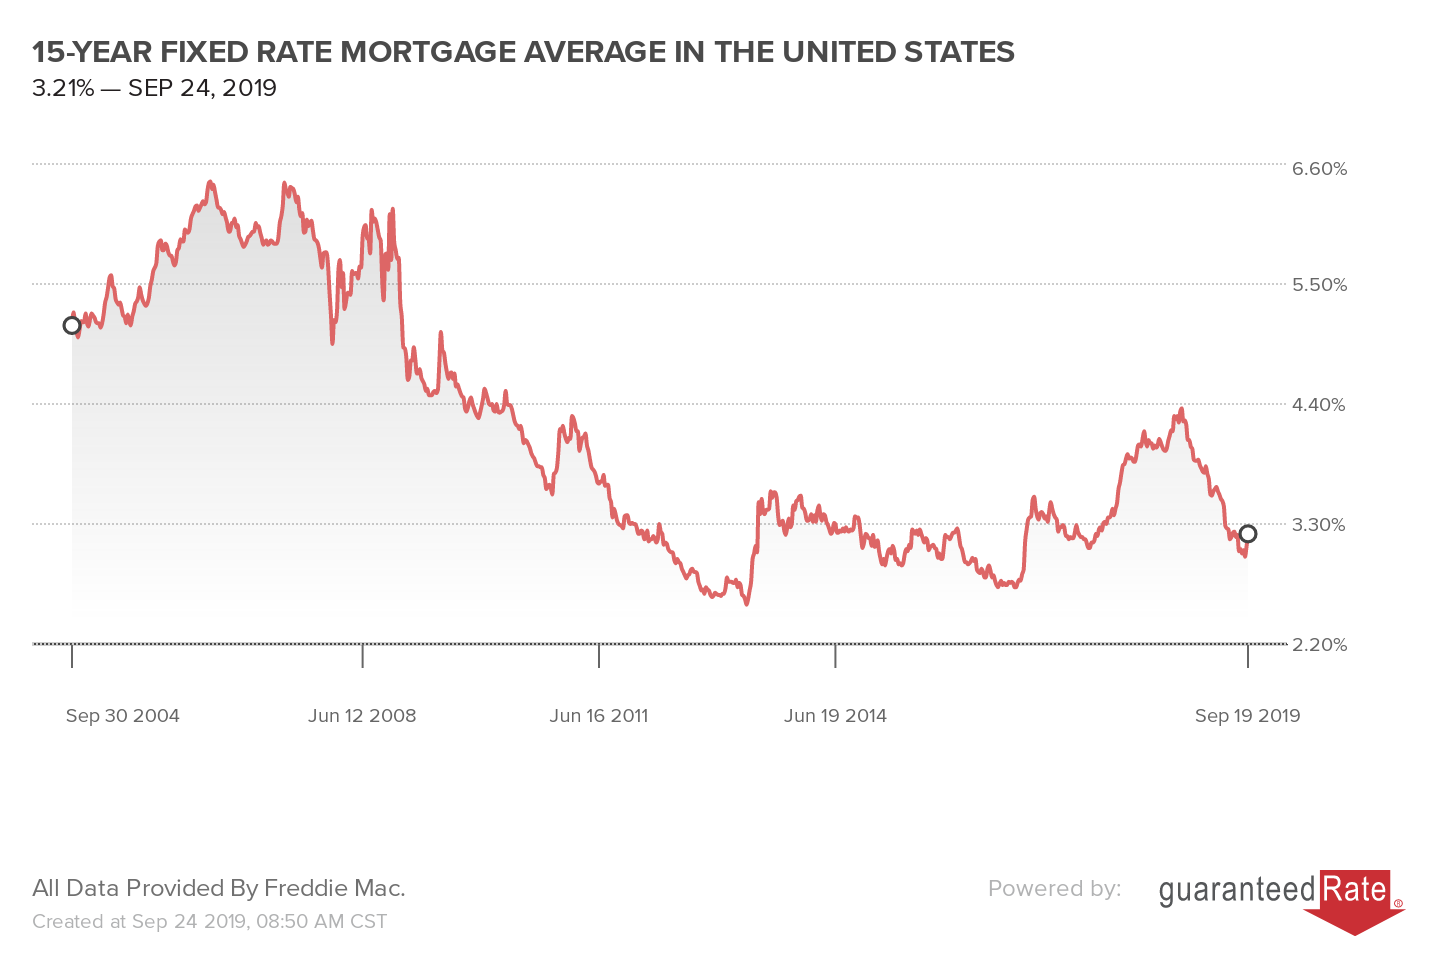 15-YEAR FIXED RATE MORTGAGE AVERAGE IN THE UNITED STATES